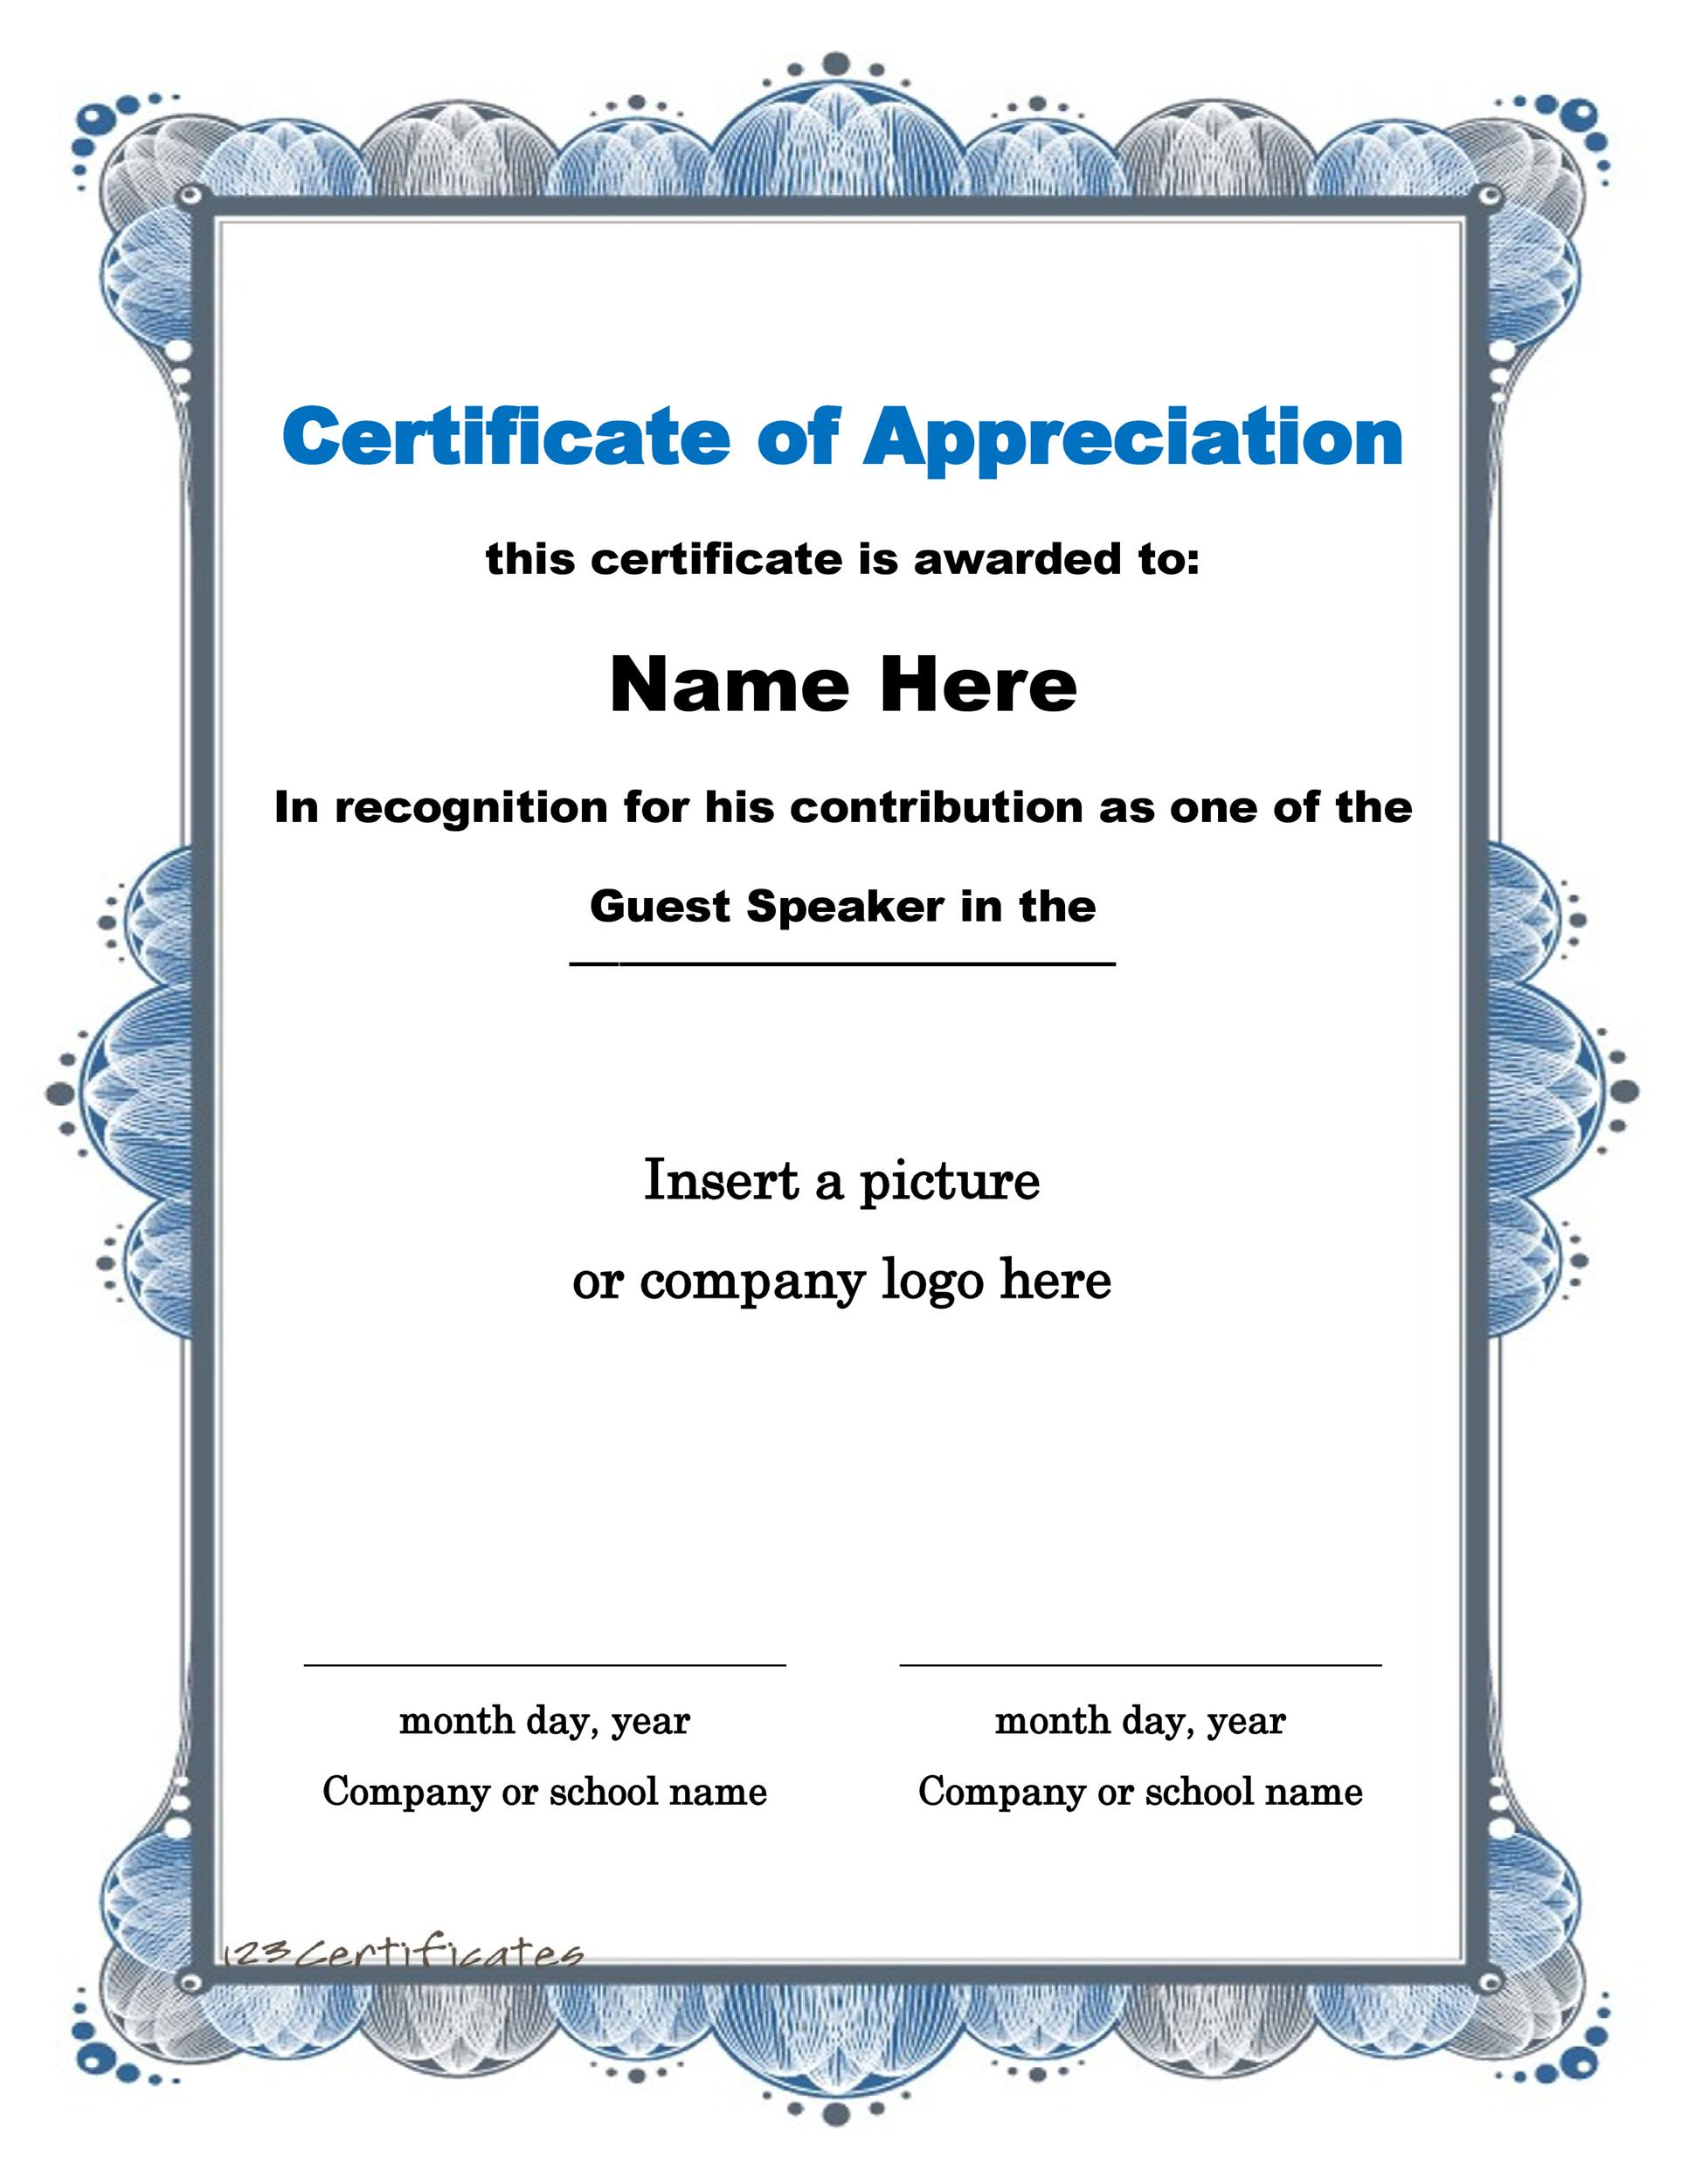 Free Certificate of Appreciation 02